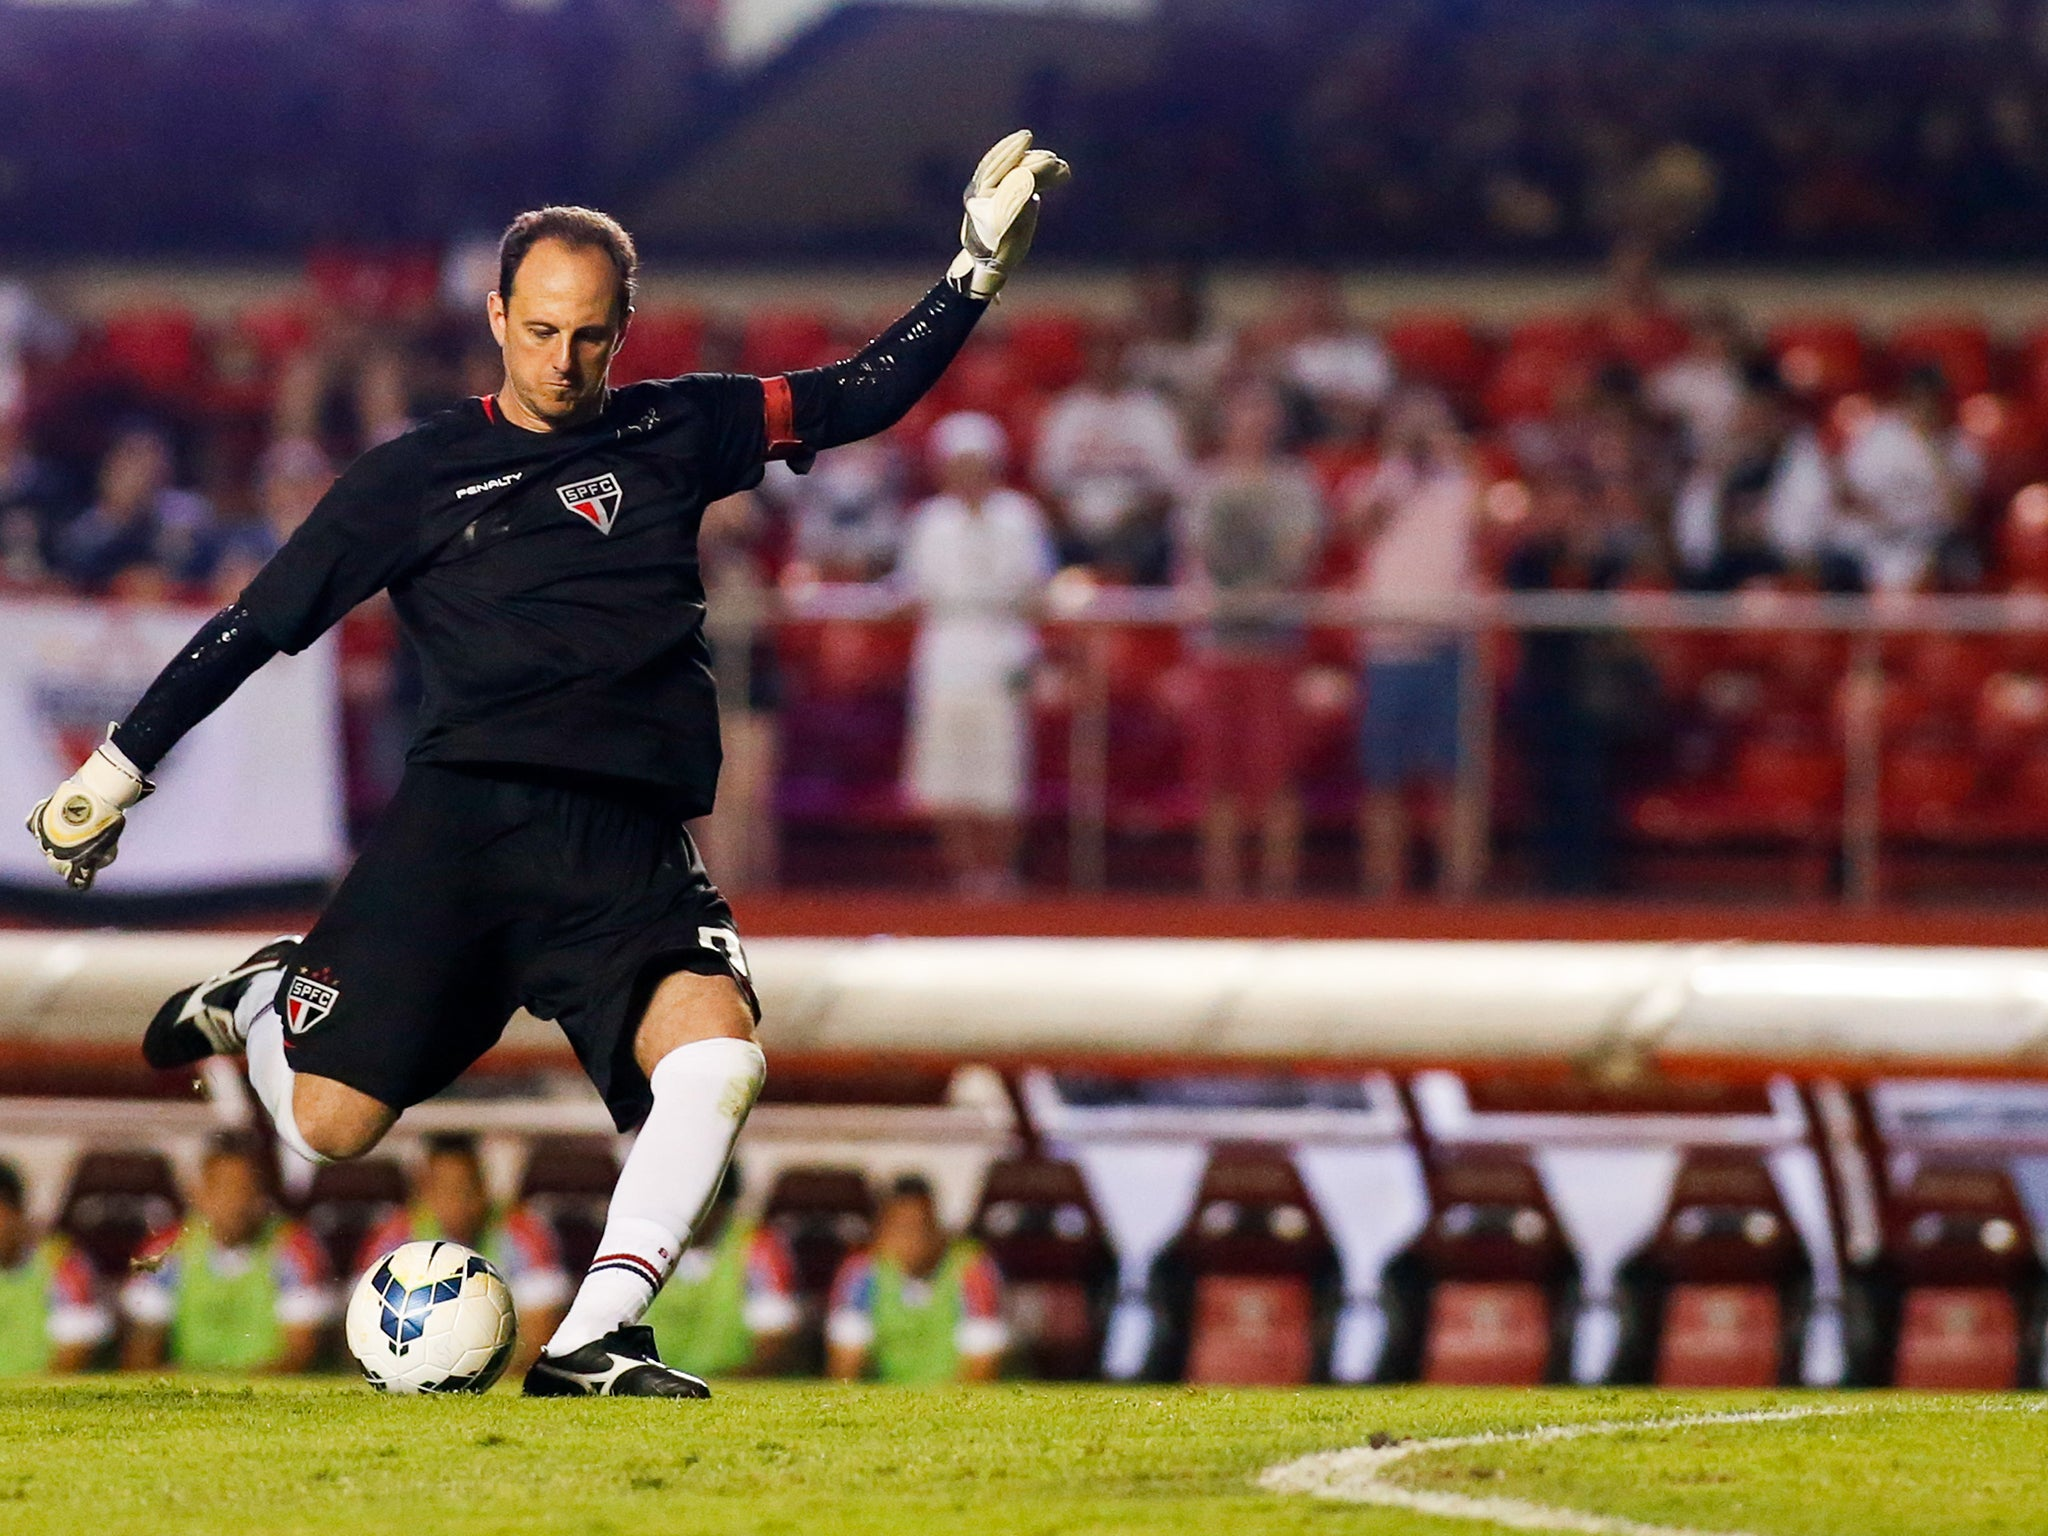 Rogerio Ceni Brazil s goalscoring keeper and the Premier League